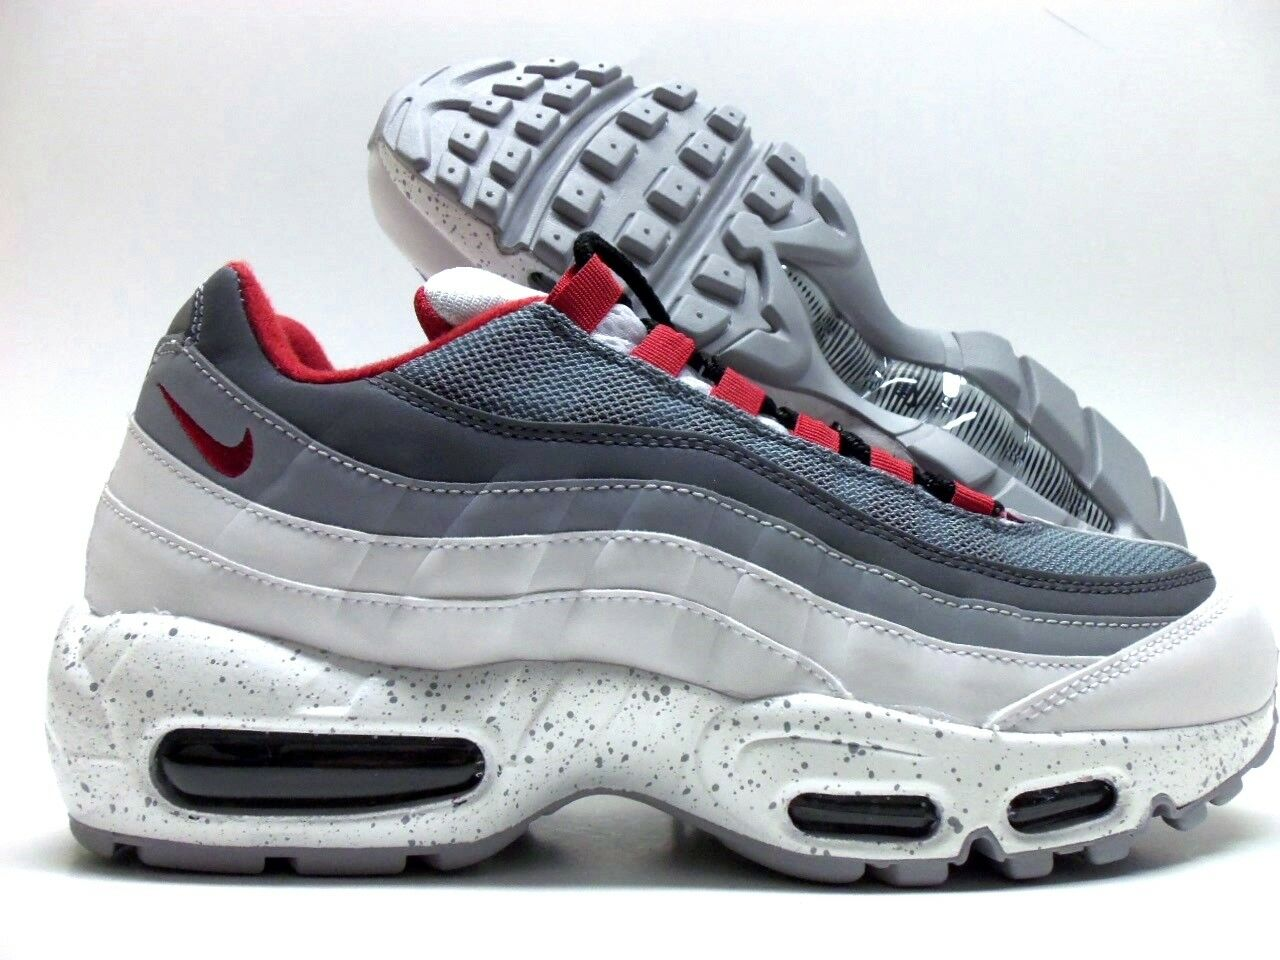 NIKE AIR MAX 95 ID WHITE/COOL GREY-DARK GREY-RED SIZE WOMEN'S 9 Price reduction Seasonal clearance sale